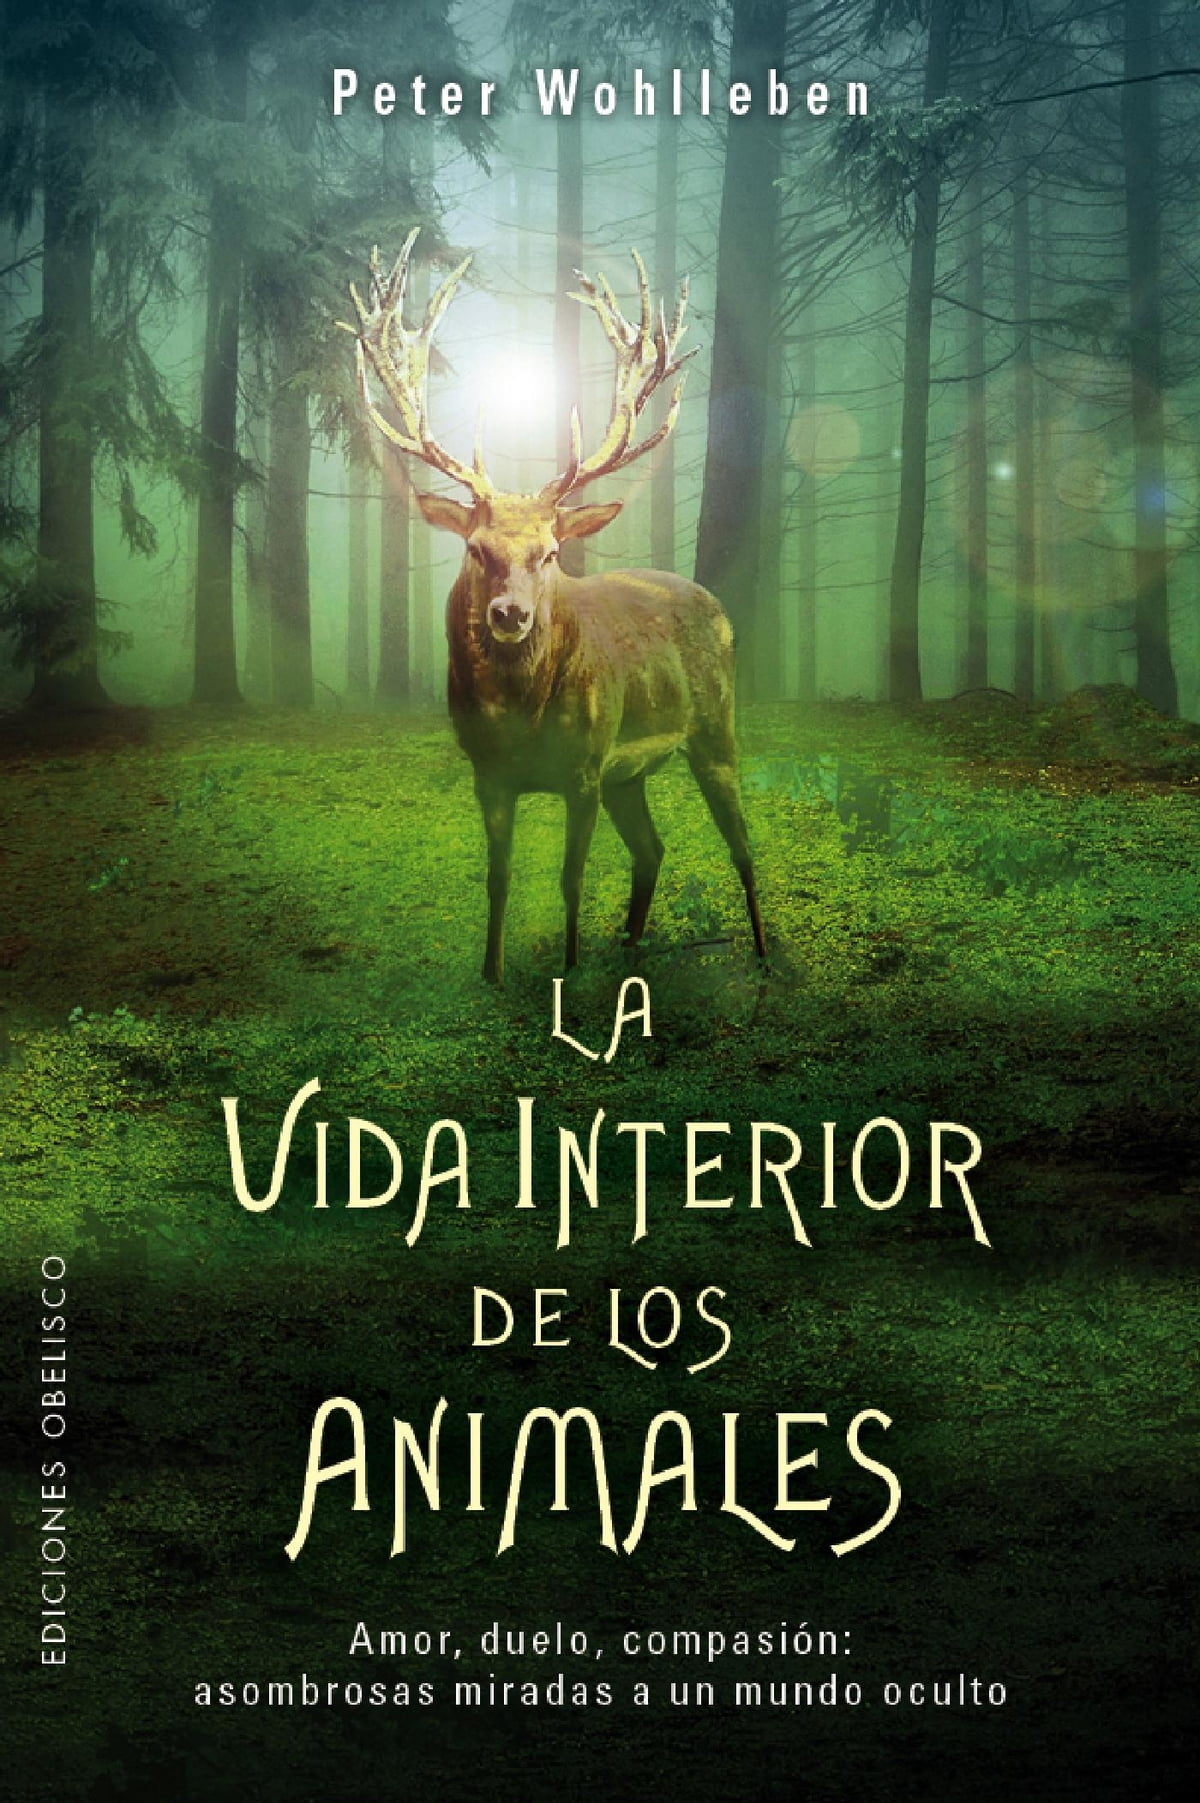 La Vida Interior De Los Animales Ebook By Peter Wohlleben 9788491112914 Rakuten Kobo United States